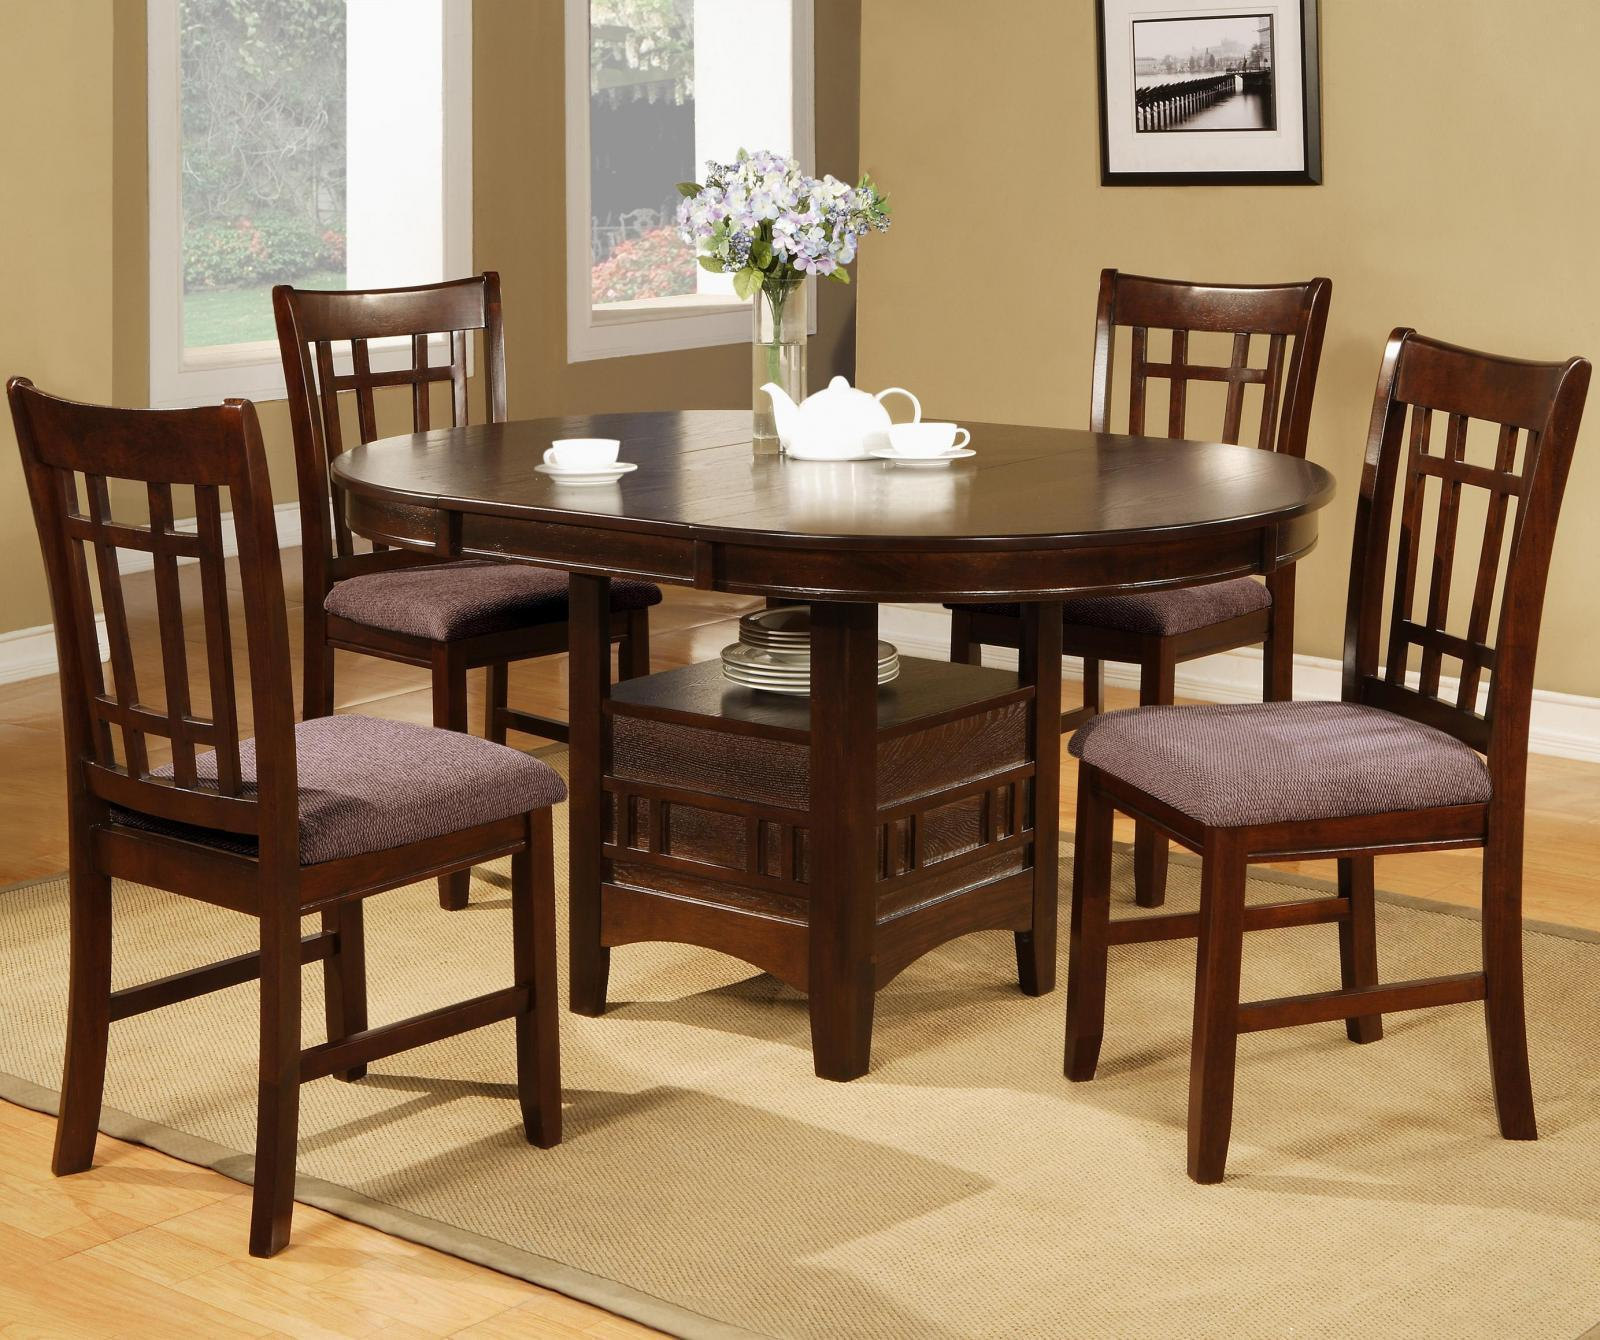 Crown Mark 2155 Empire Modern Oak Brown Finish Dining Table & Chair Set 5Pcs for sale  USA